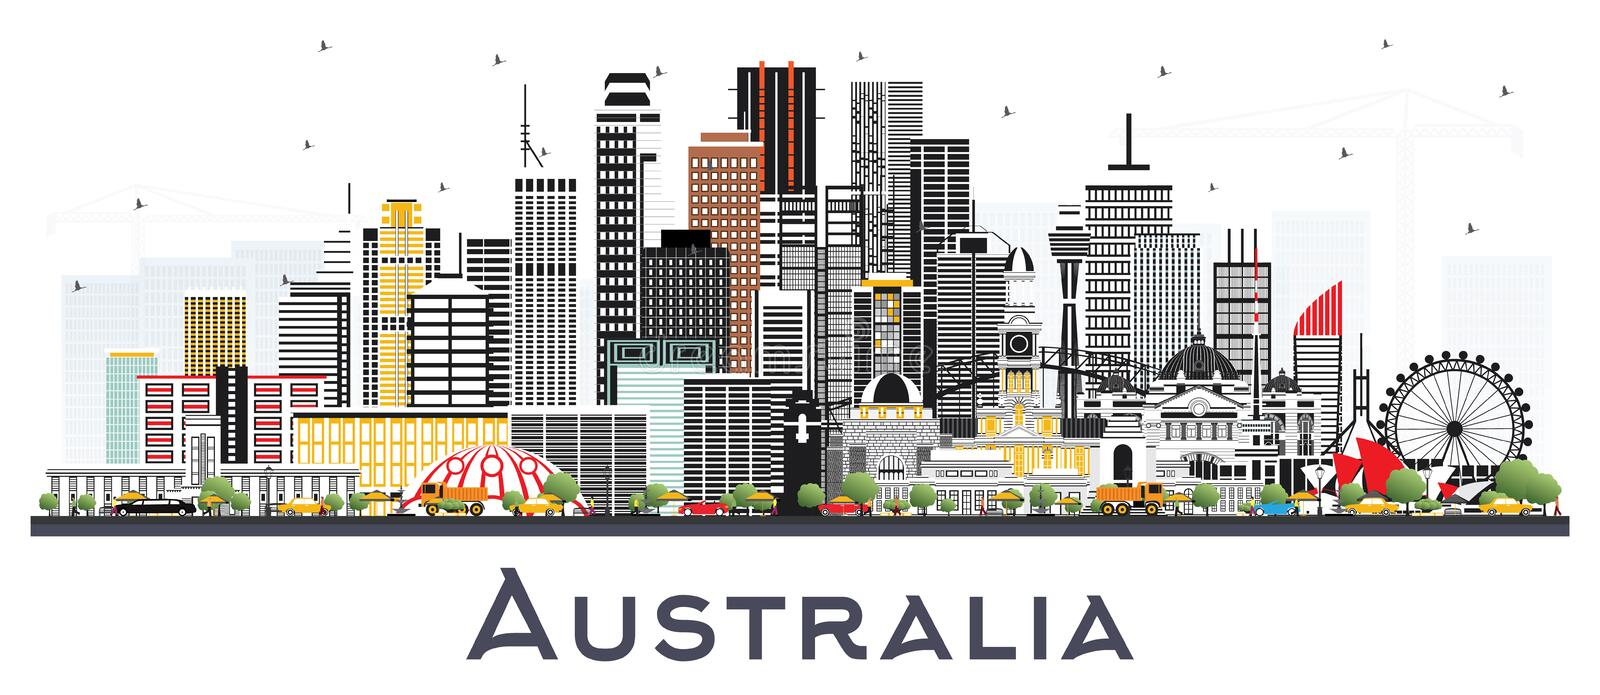 Australia City Skyline with Gray Buildings Isolated on White royalty free illustration